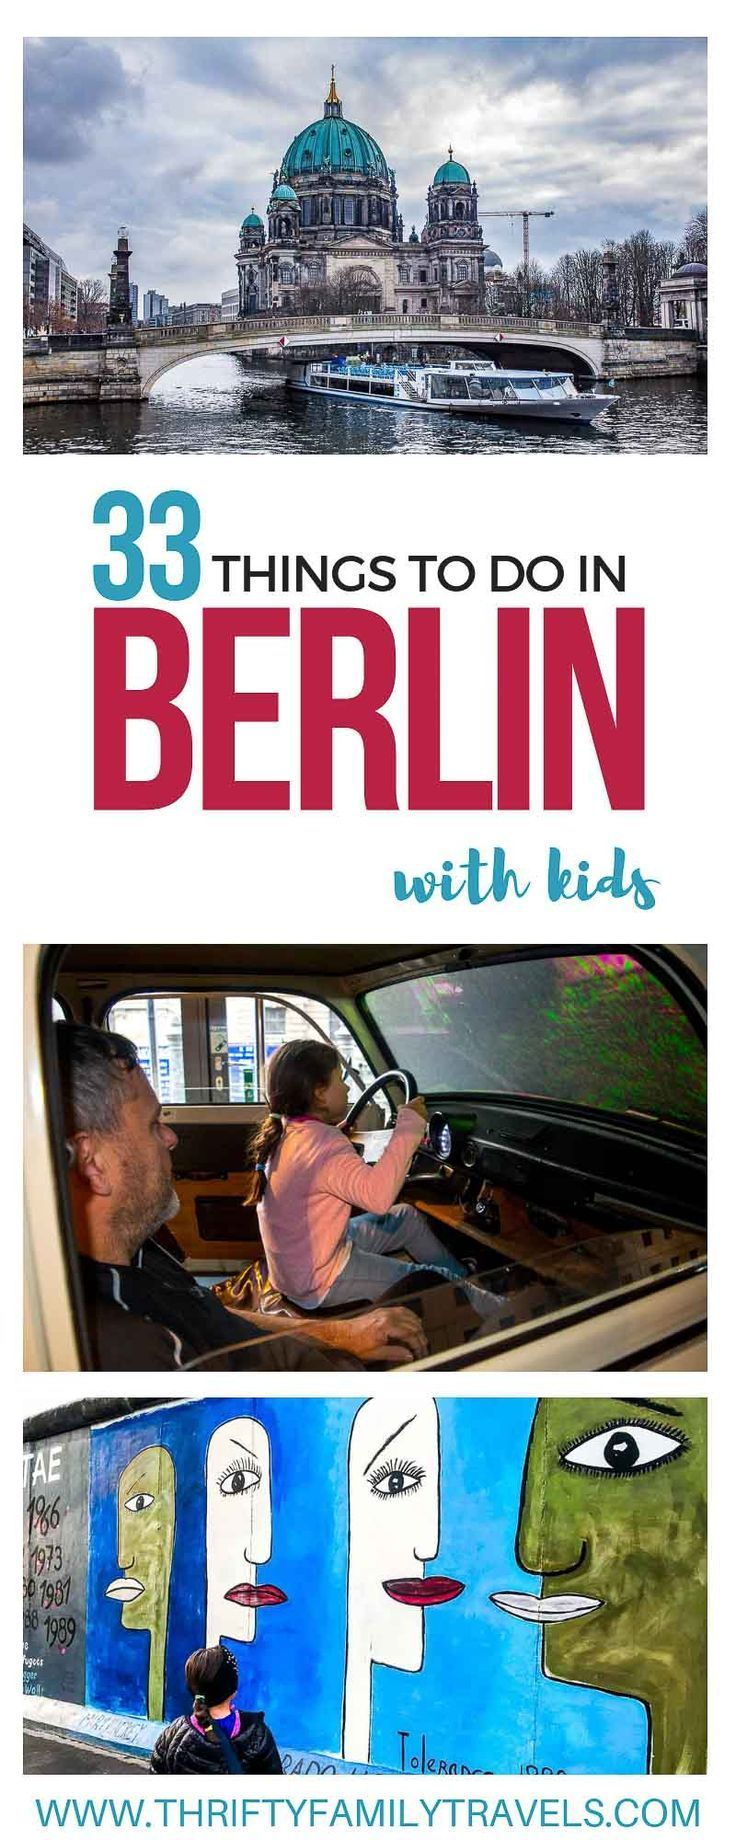 Top things to do in Berlin with kids: Click the link for tips on sightseeing in Berlin with kids as well as the best place to stay in Berlin for families. #style #shopping #styles #outfit #pretty #girl #girls #beauty #beautiful #me #cute #stylish #photooftheday #swag #dress #shoes #diy #design #fashion #Travel